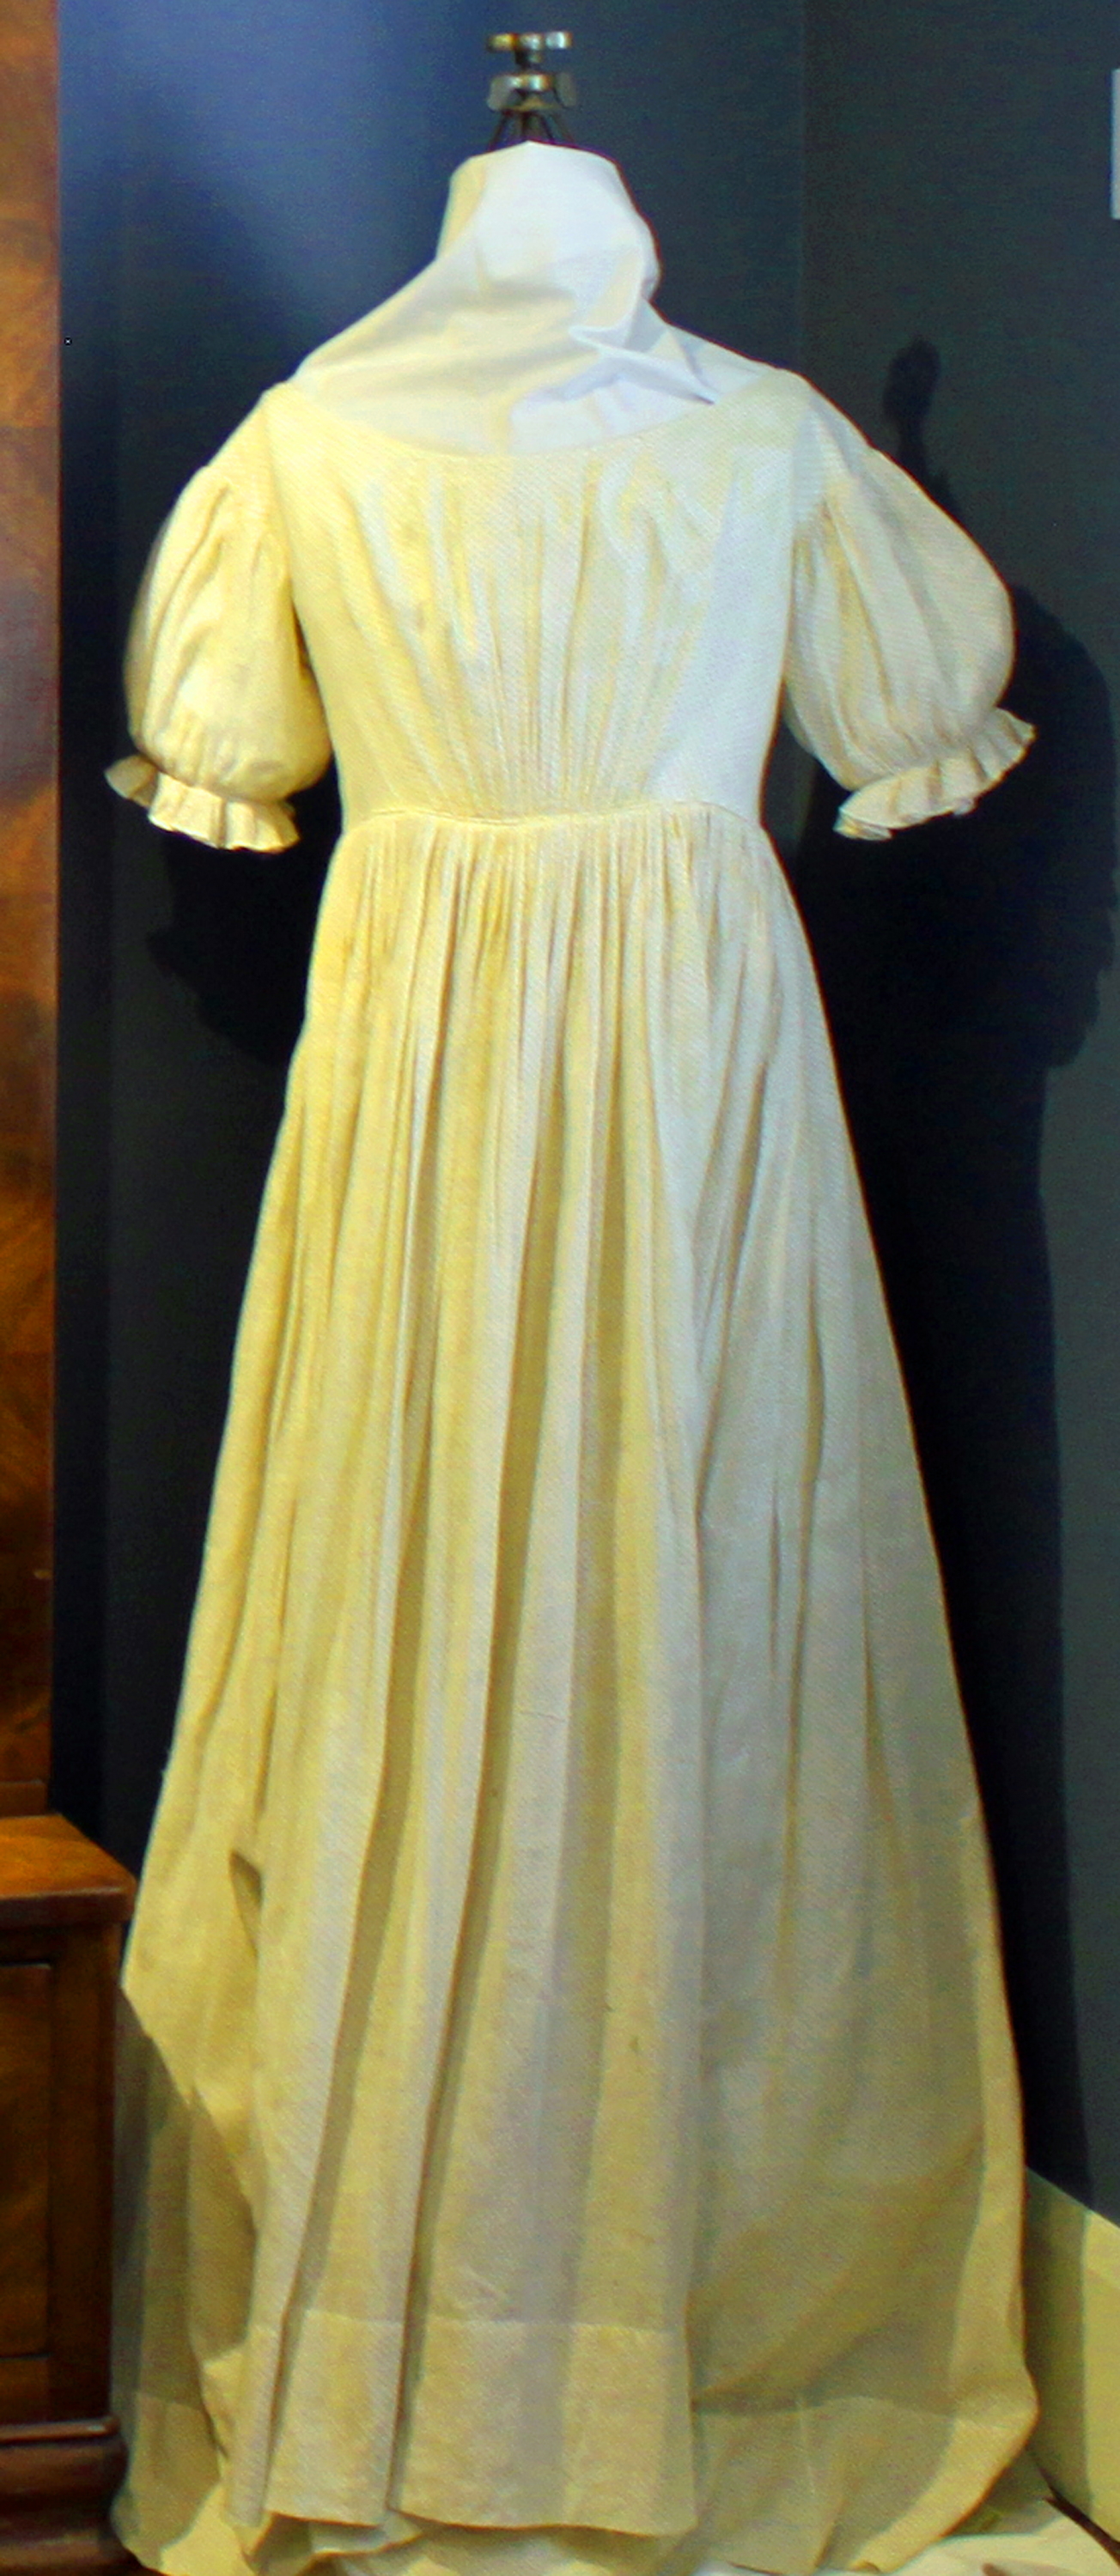 Cotton dress made by Lucy Pier Stevens while in Texas visiting her Aunt Lucy Merry Pier and Uncle James Bradford Pier. Lucy Stevens arrived in Texas on Christmas Day 1859 and because of the outbreak of the Civil War in 1861, she was trapped in Texas until she was able to escape on a Confederate blockade runner's ship on April 17, 1865. Lucy arrived safely in Ohio on May 4, 1865 with this dress.